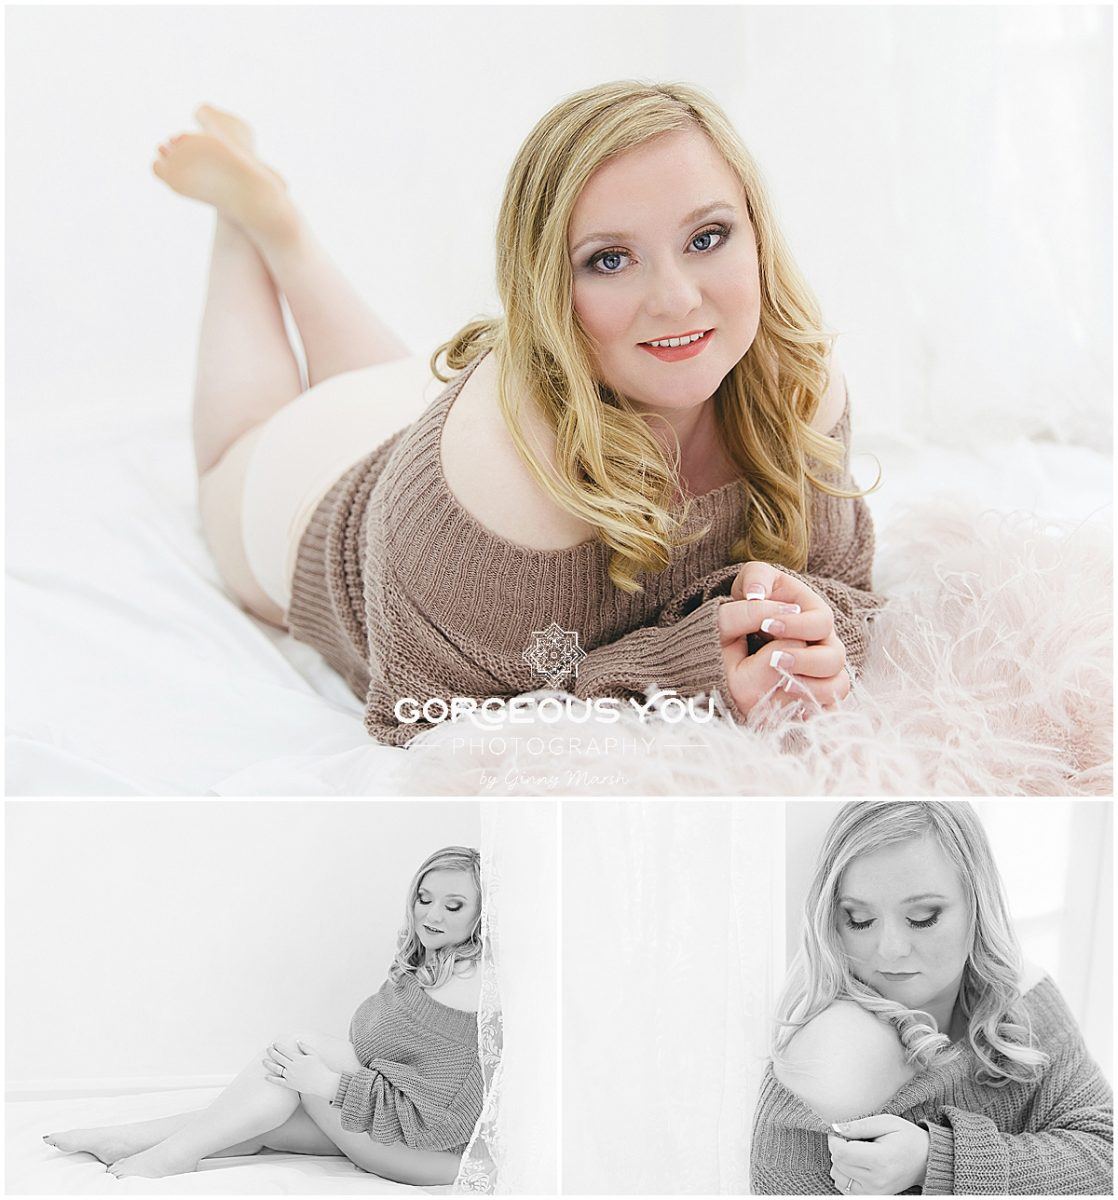 Boudoir photoshoot | Gorgeous You photography